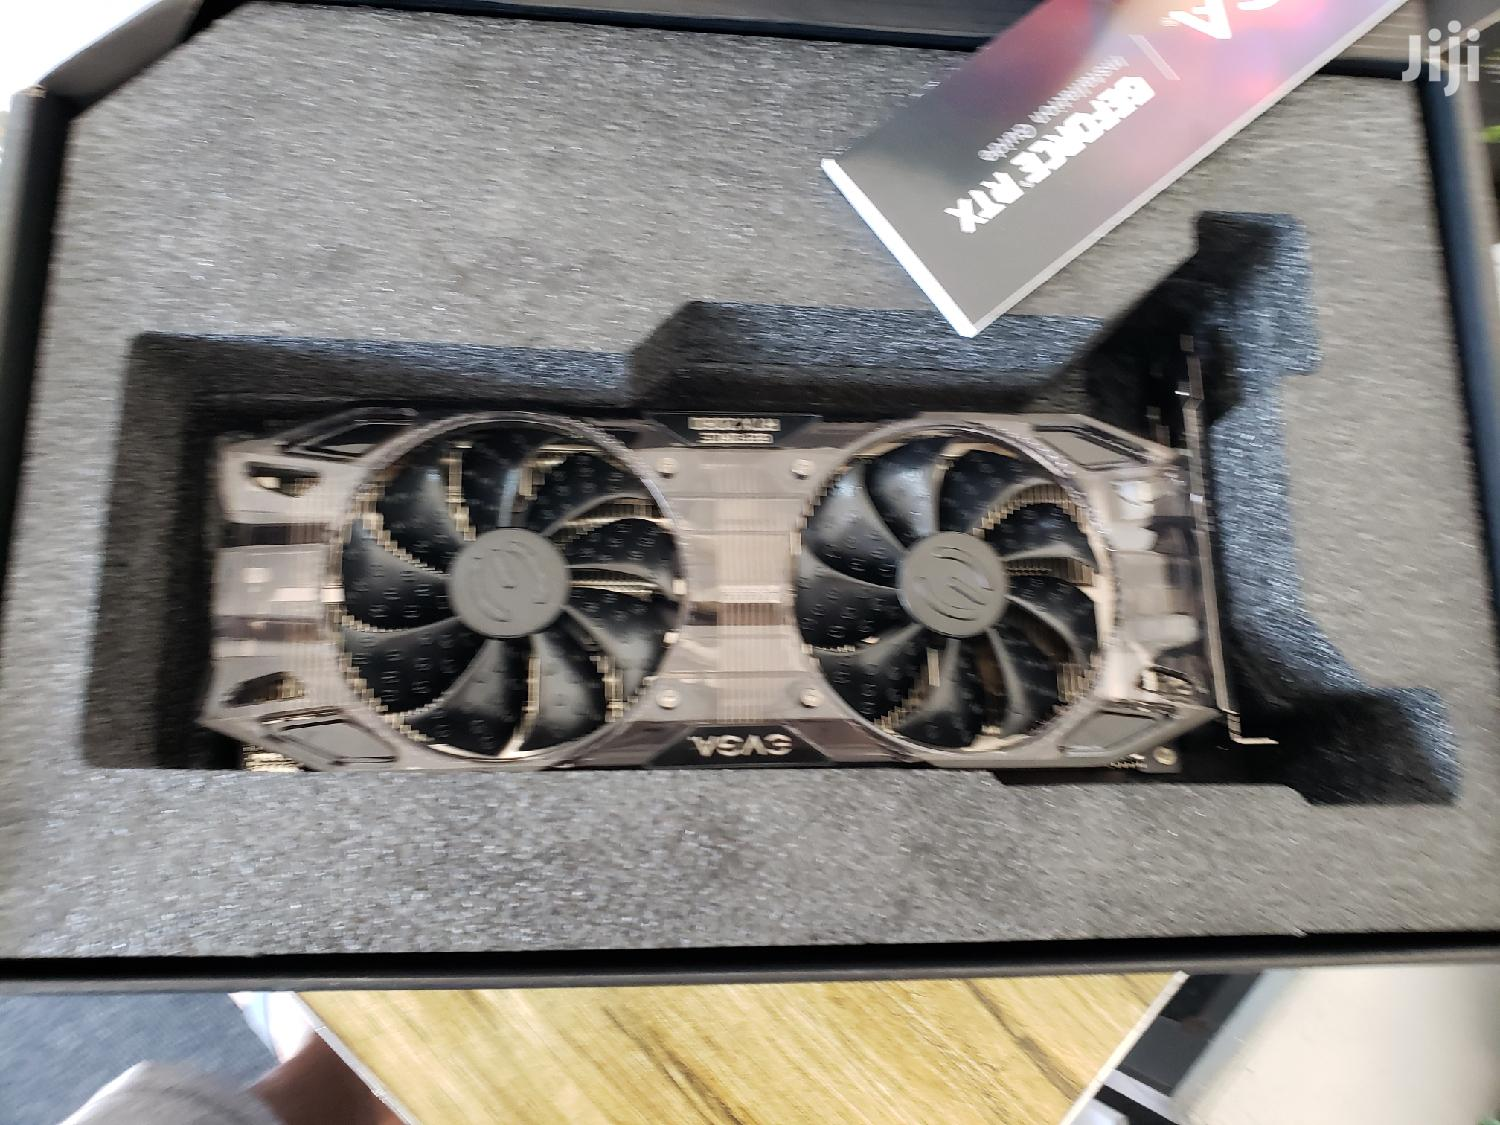 Evga Geforce Rtx 2080 Xc Gaming, 8gb Rgb LED Graphics Card | Computer Hardware for sale in Accra Metropolitan, Greater Accra, Ghana